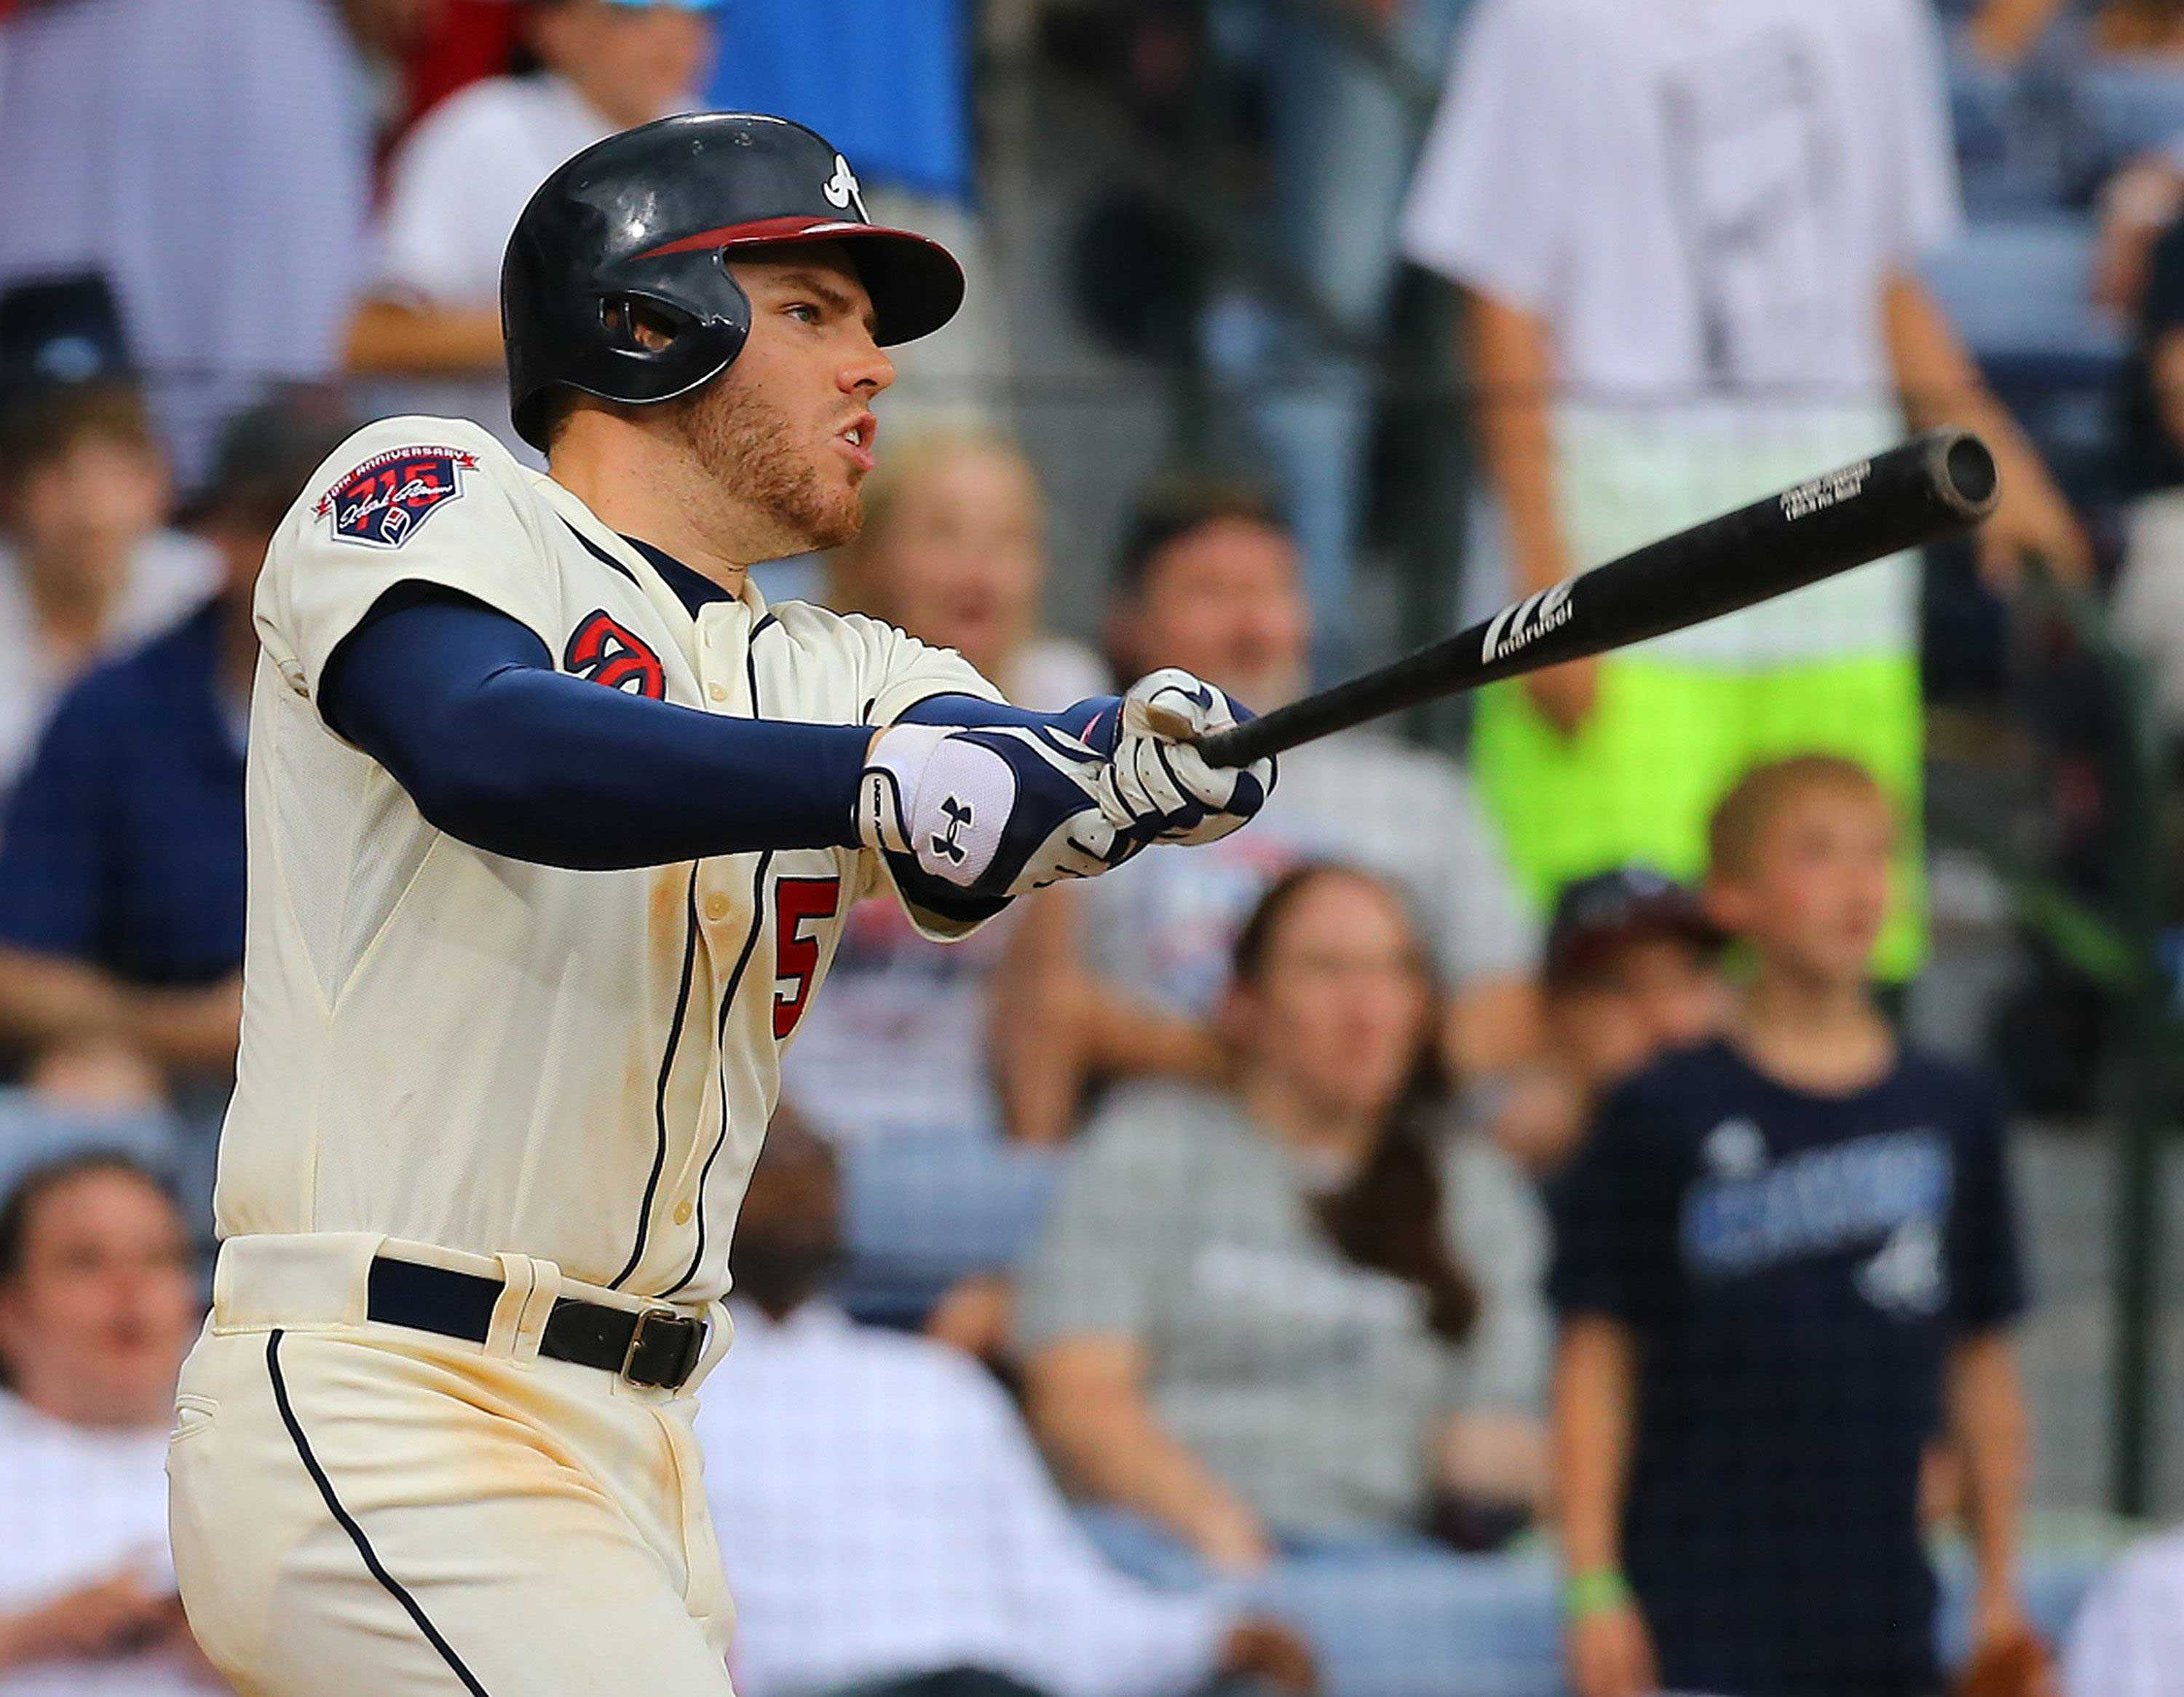 The Braves will need stellar performances from players like Freddie Freeman if they are to have any chance in the playoffs this season.